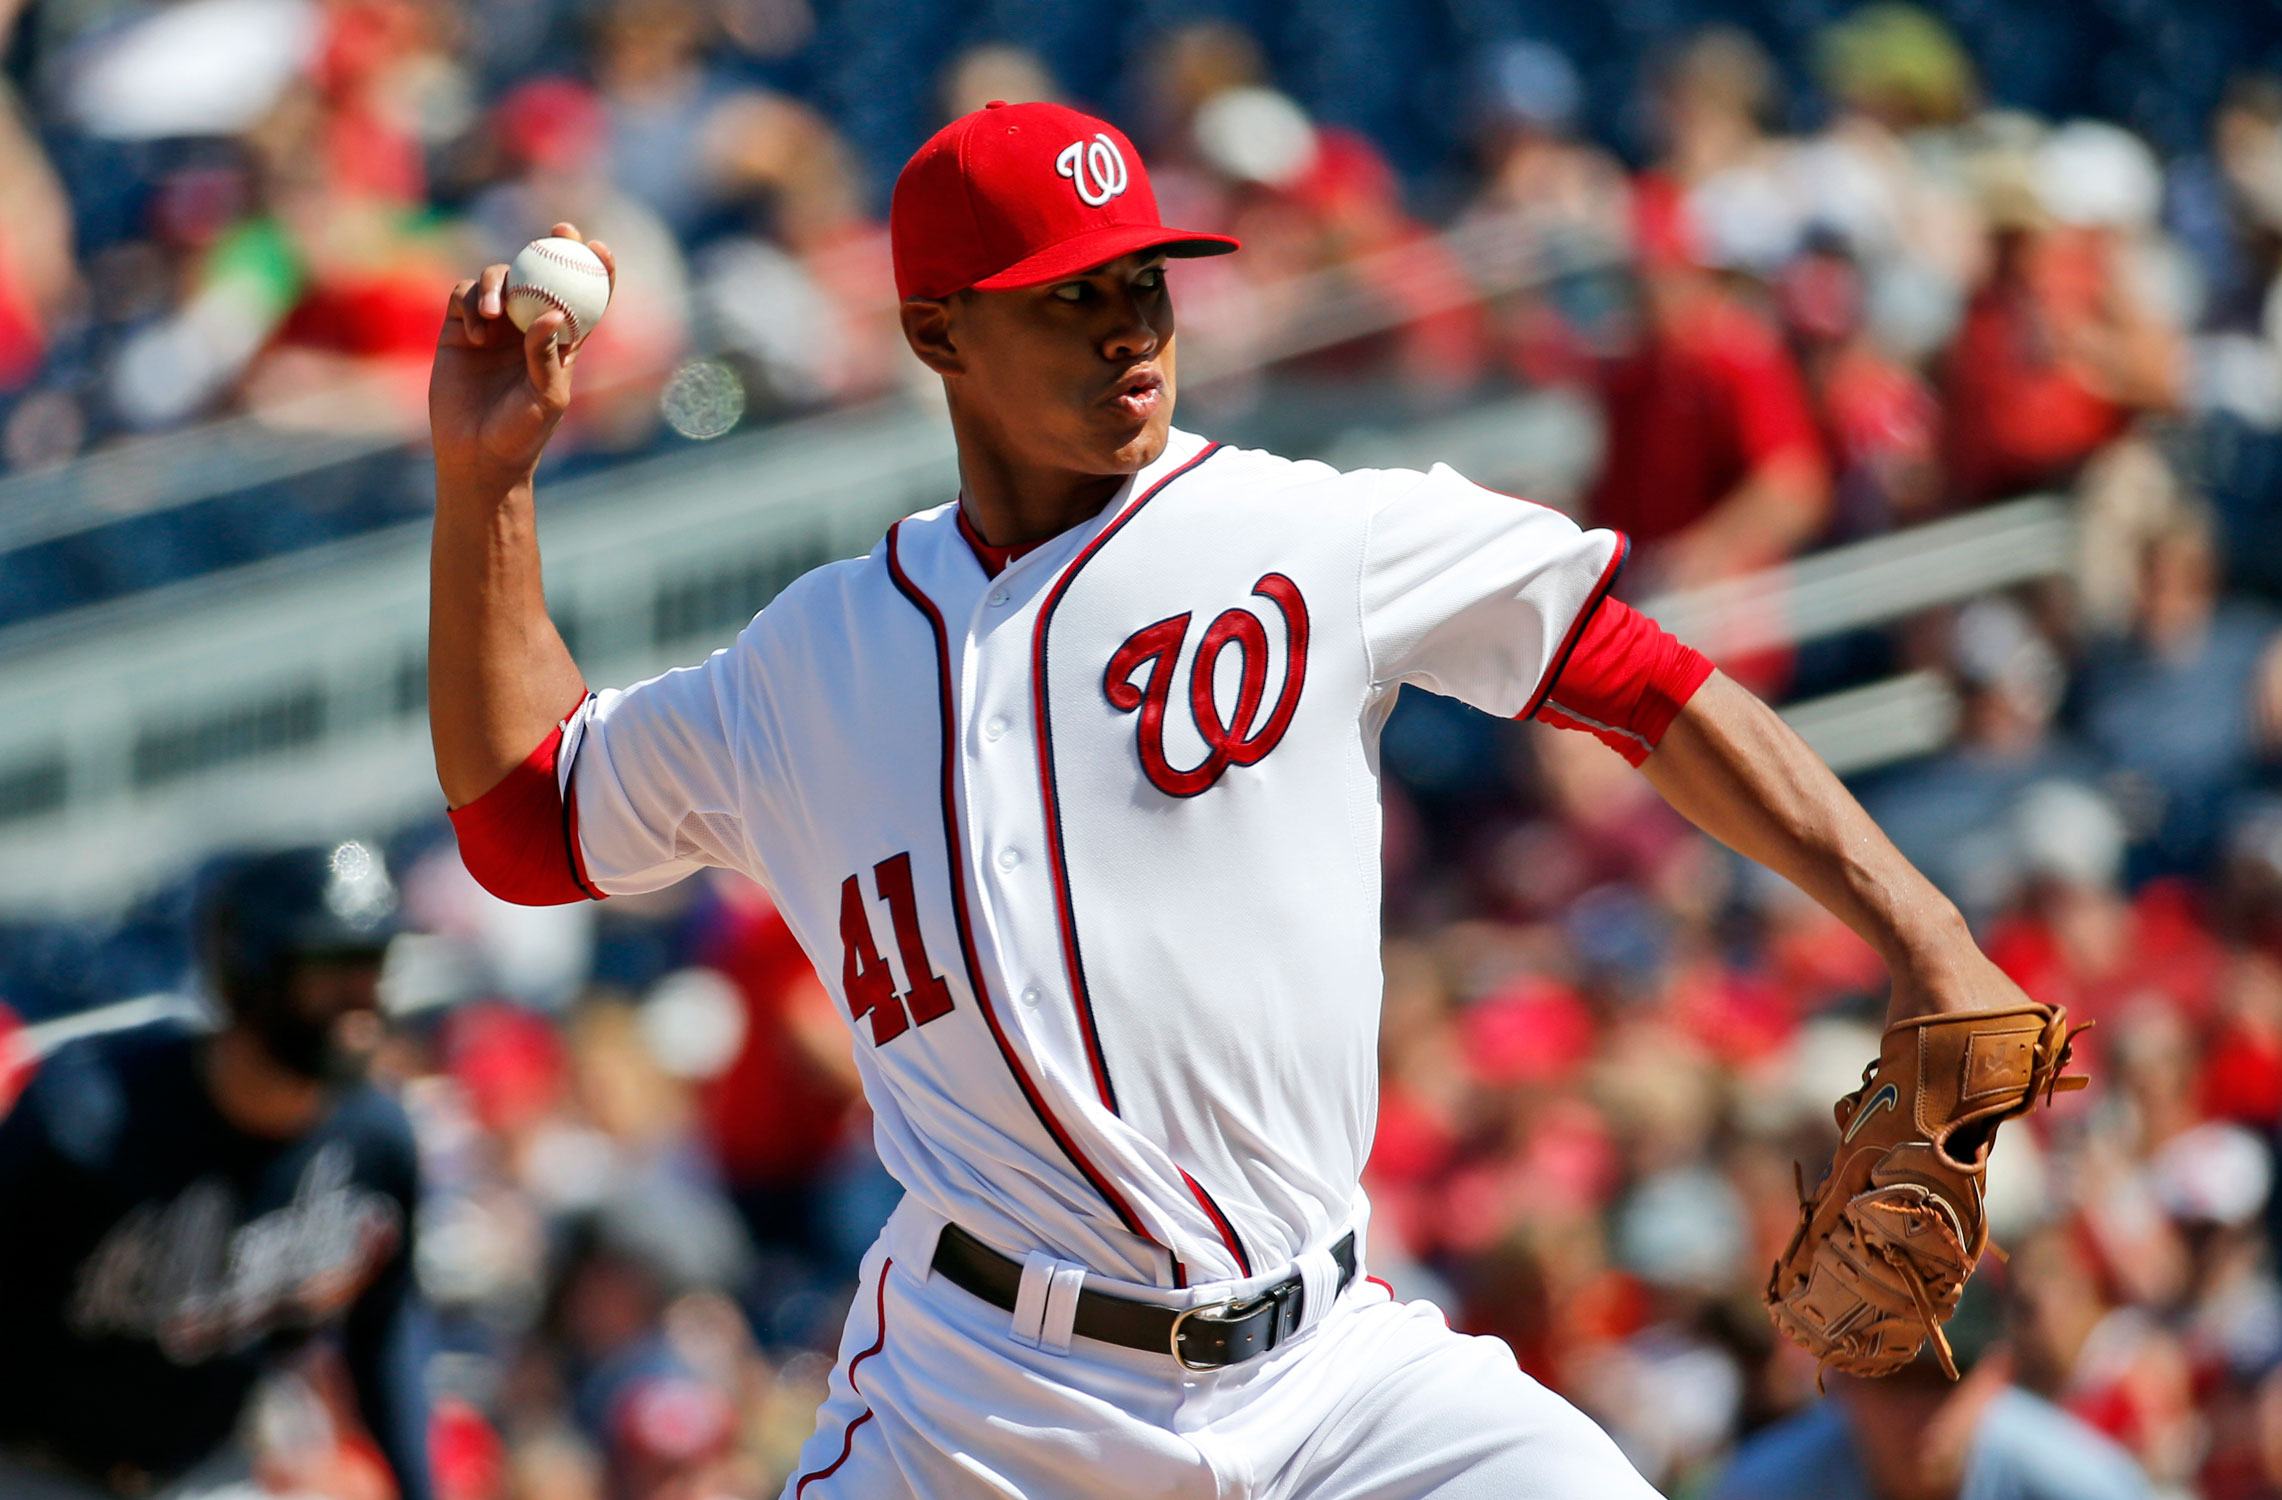 Nats send rookie Ross to bullpen